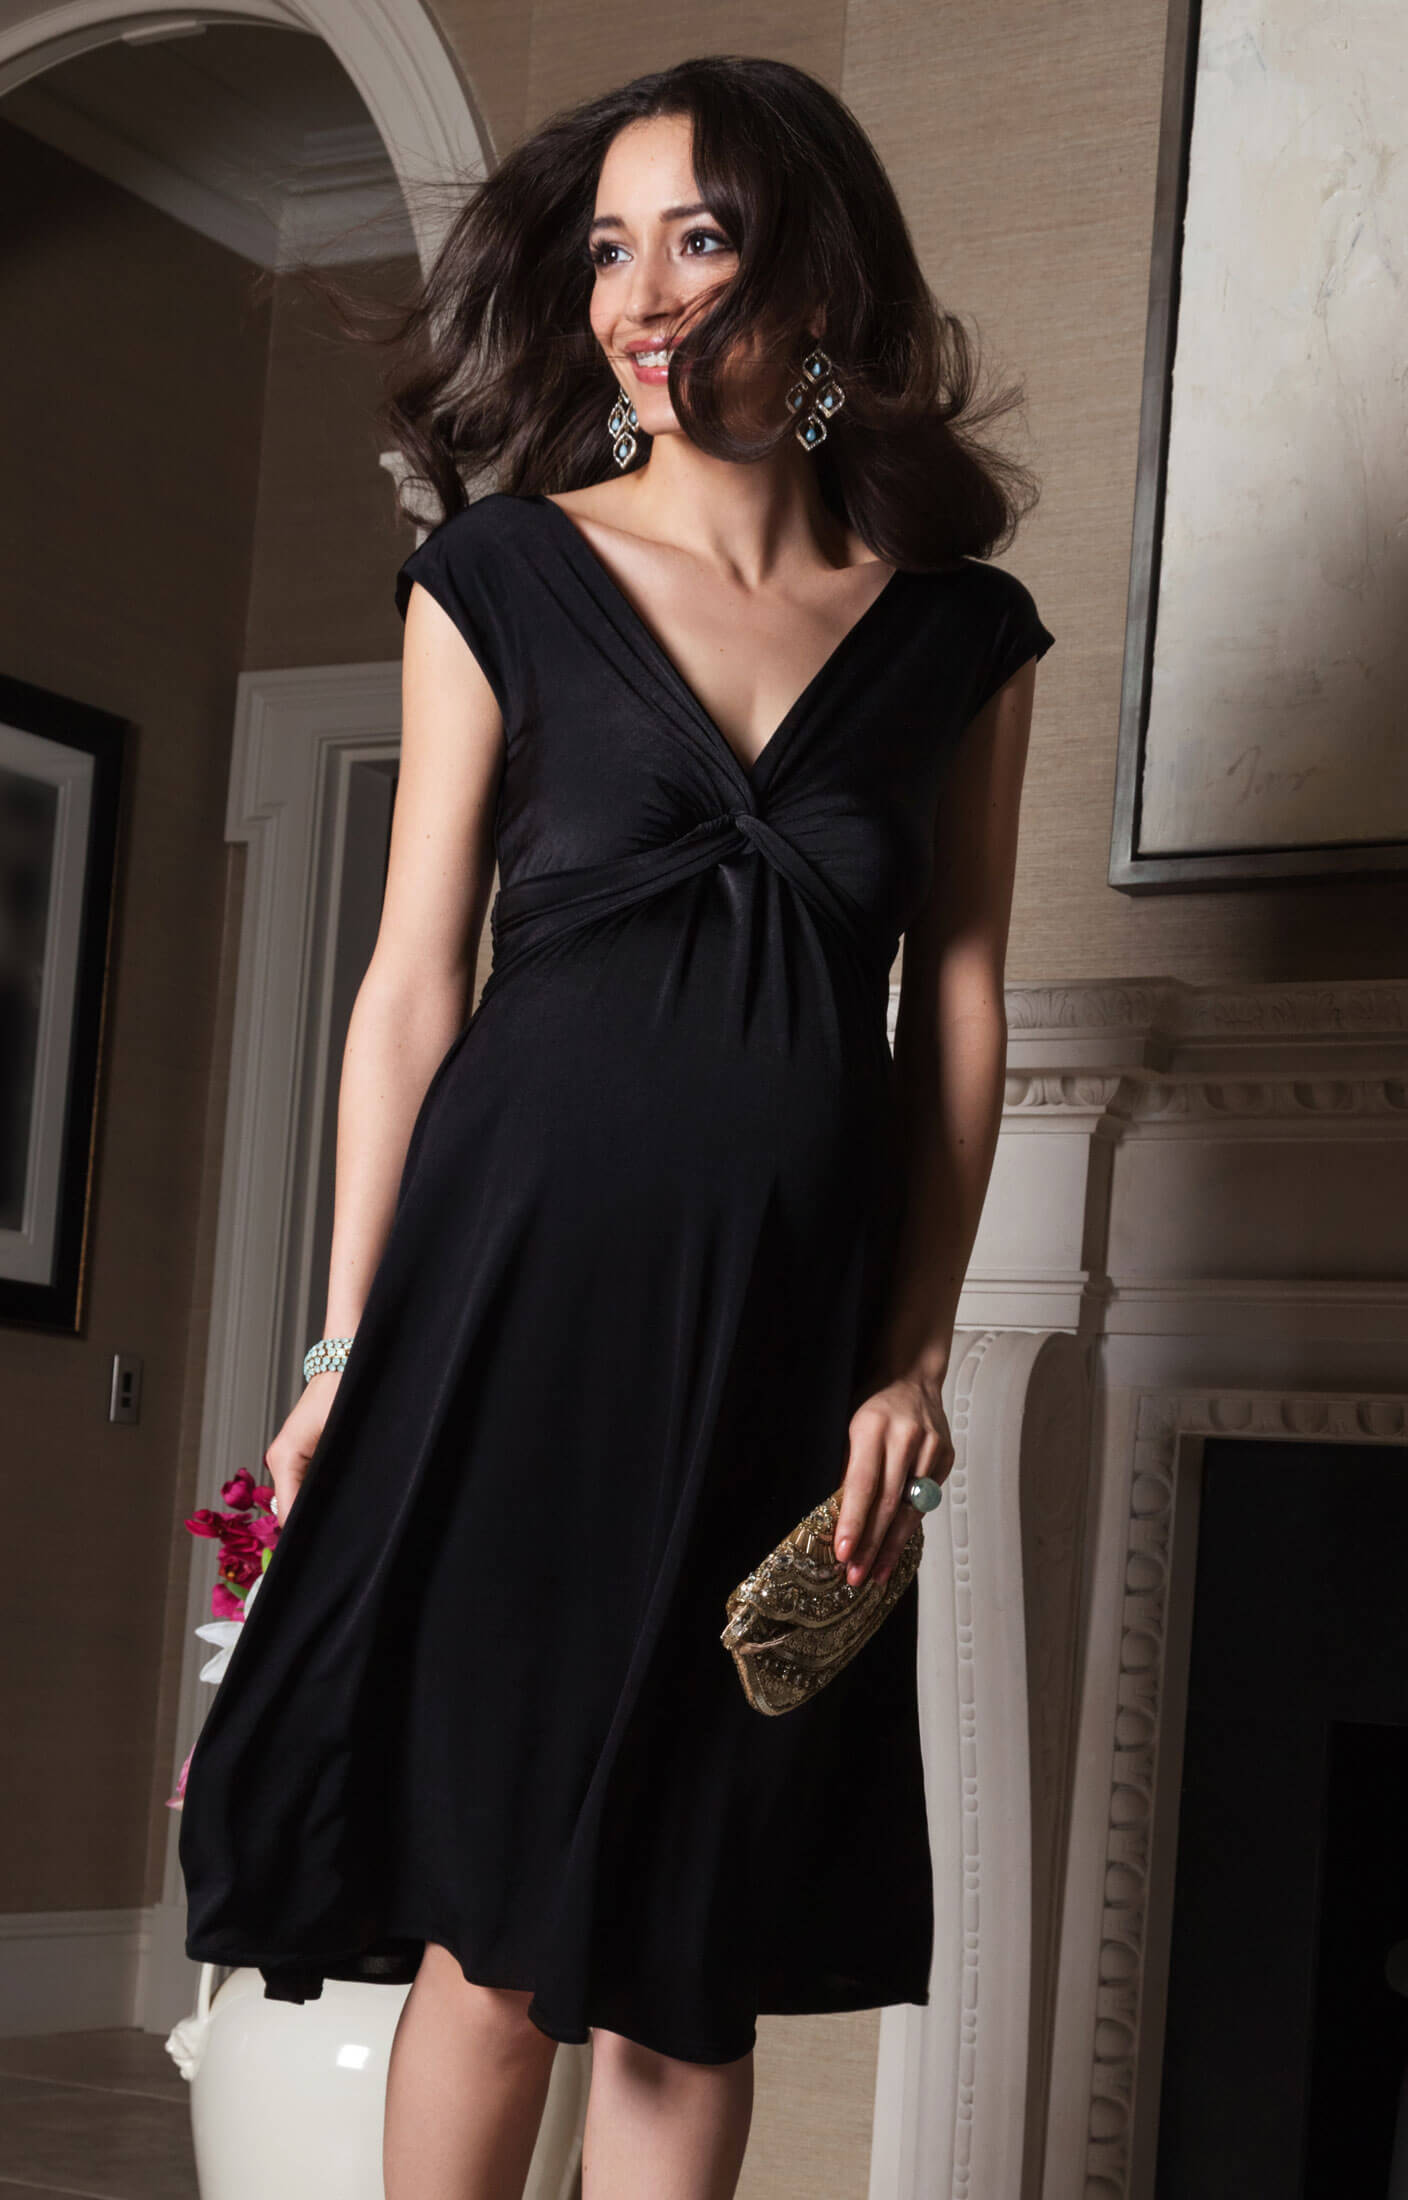 Maternity Dresses At Dorothy Perkins we know mums-to-be want to look good and feel comfortable throughout your pregnancy, so let us help you with our range of must-have maternity dresses. Our online rails are stocked with notice-me maternity maxis, perfect maternity party dresses .